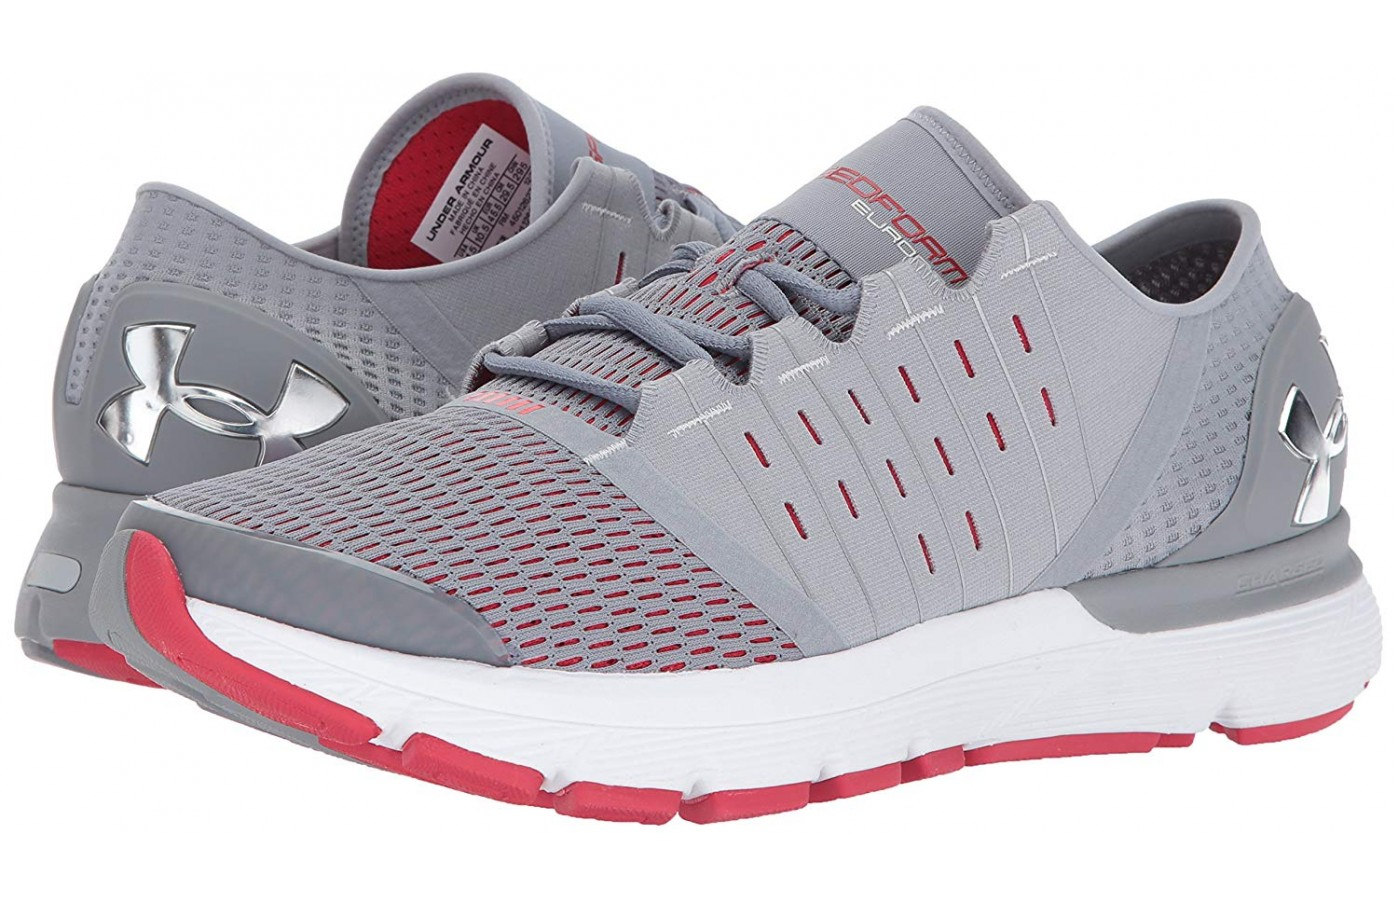 The UA Speedform Europa is among the best running shoes providing the necessary support to run comfortably on sidewalks and asphalt roads for long periods.